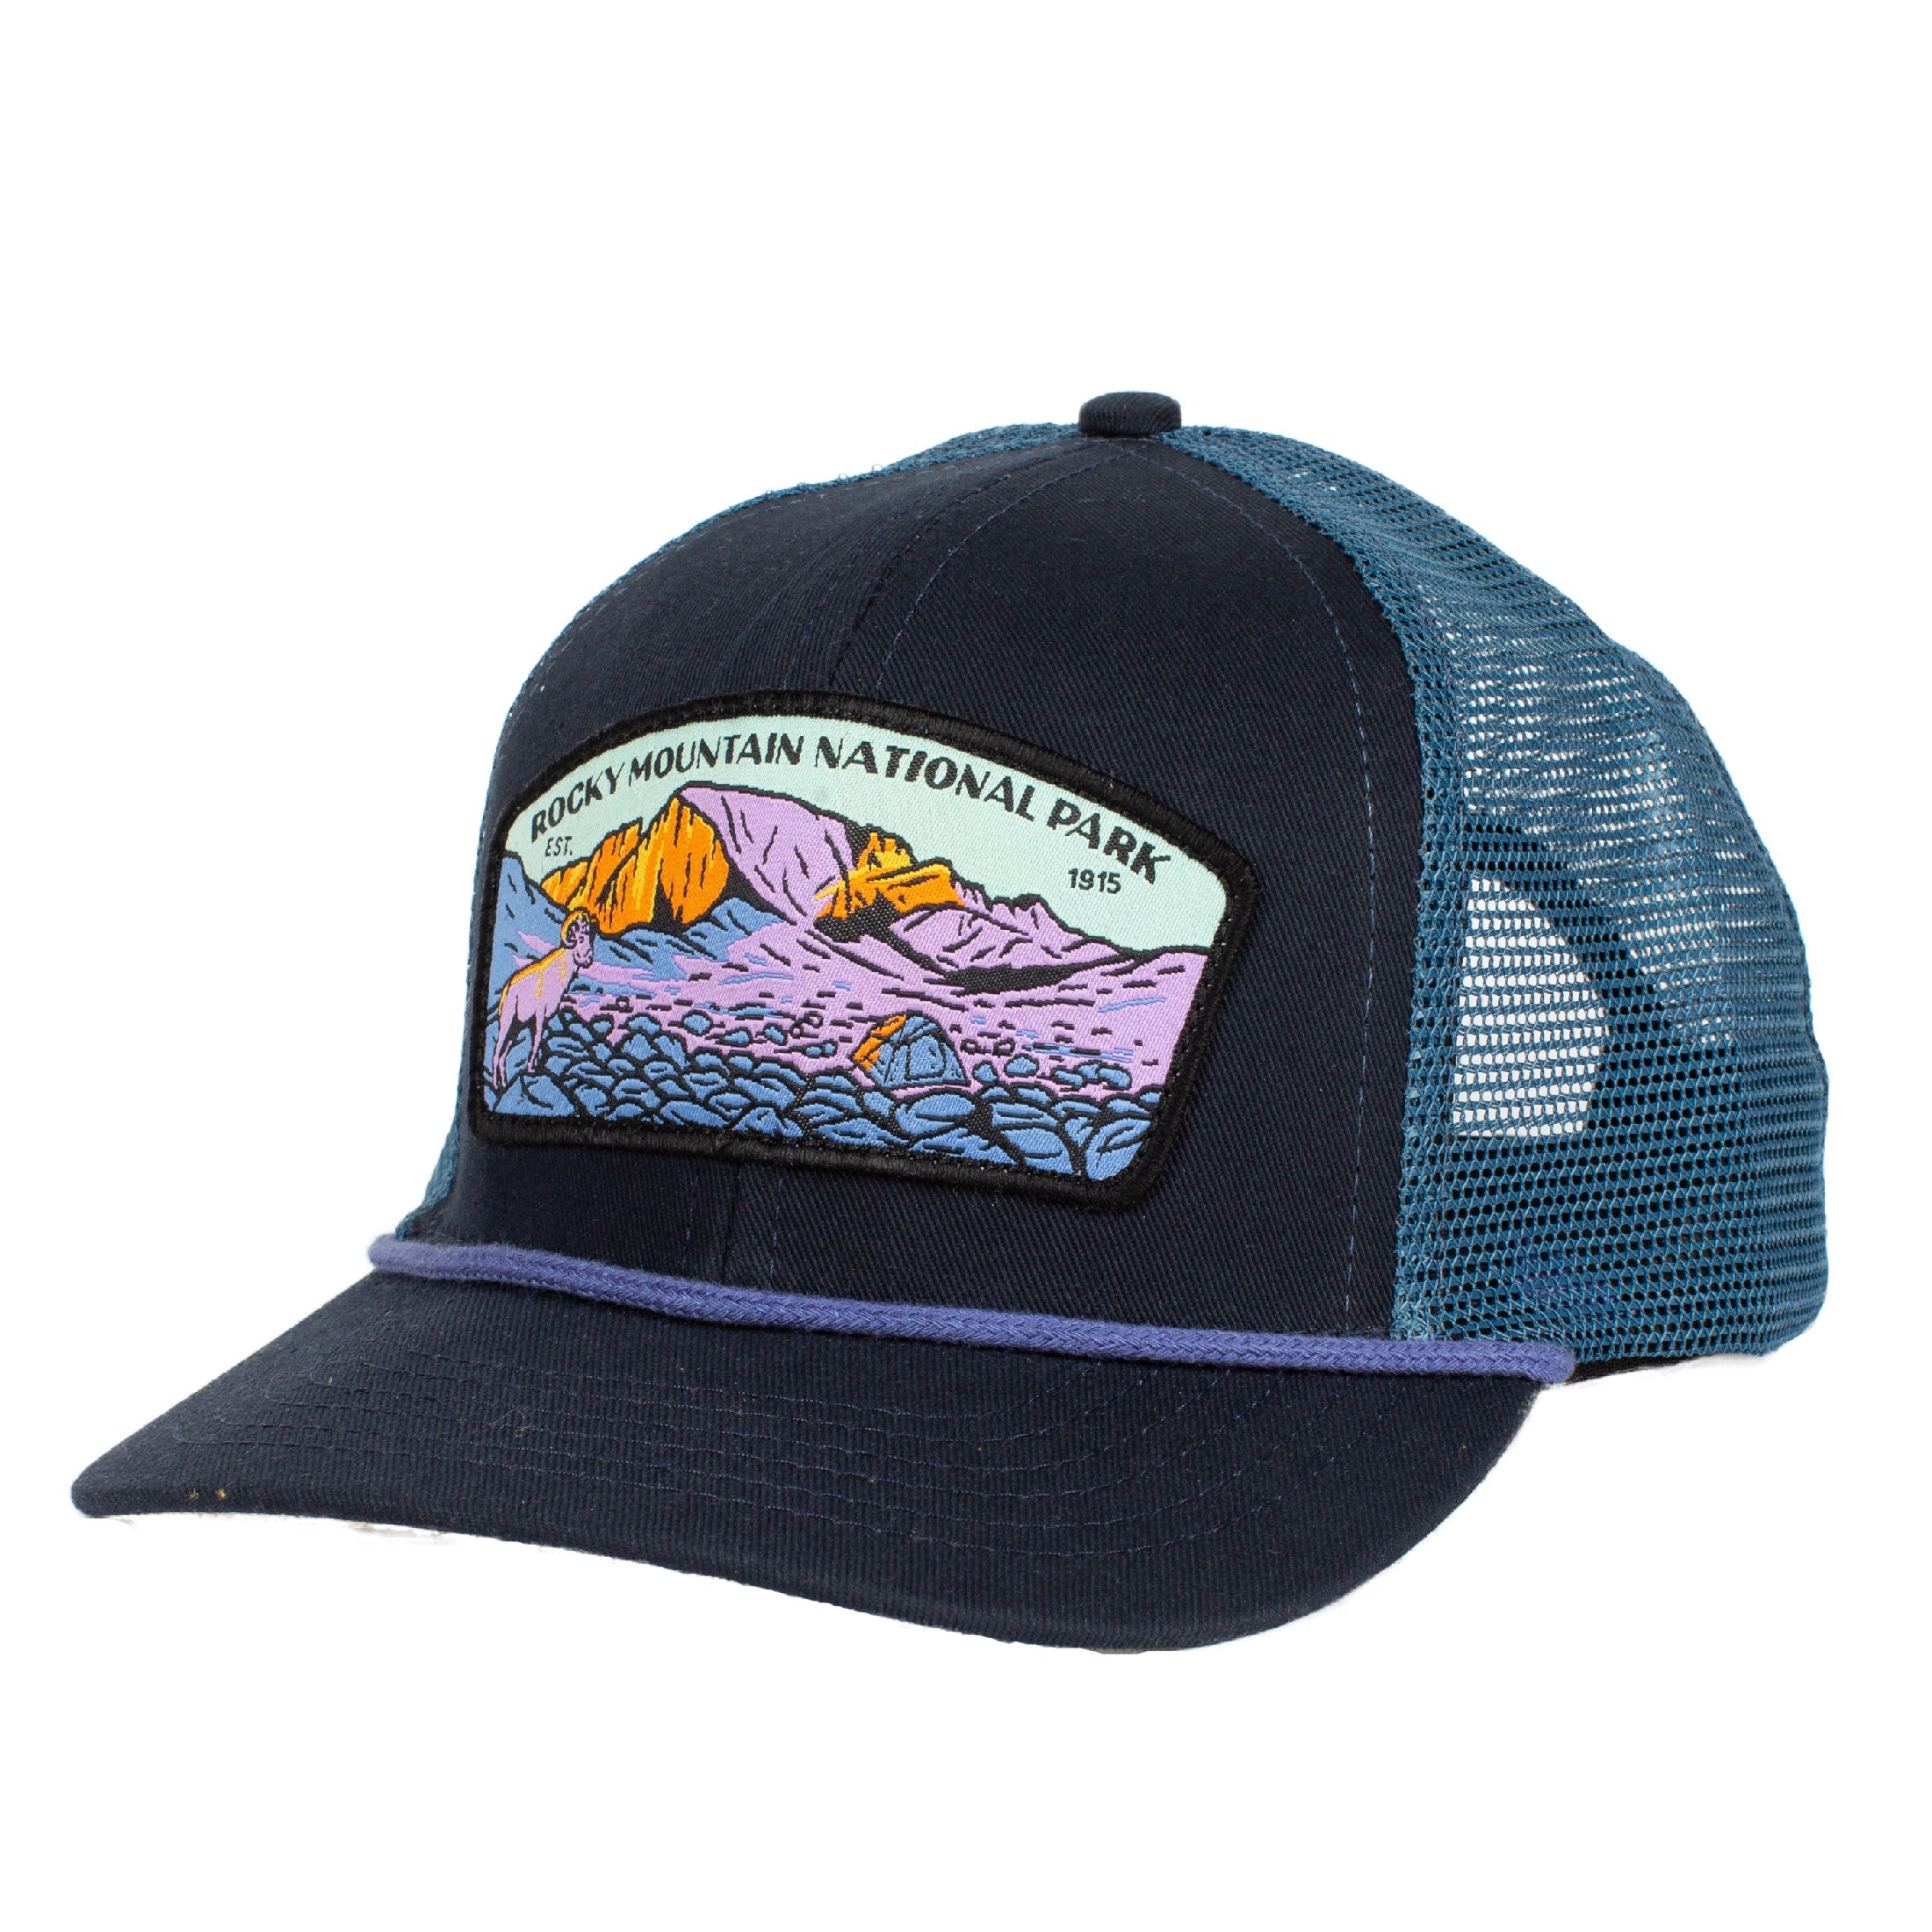 2a27ffbf5 Rocky Mountain National Park Hat Mesh – Sendero Provisions Co.